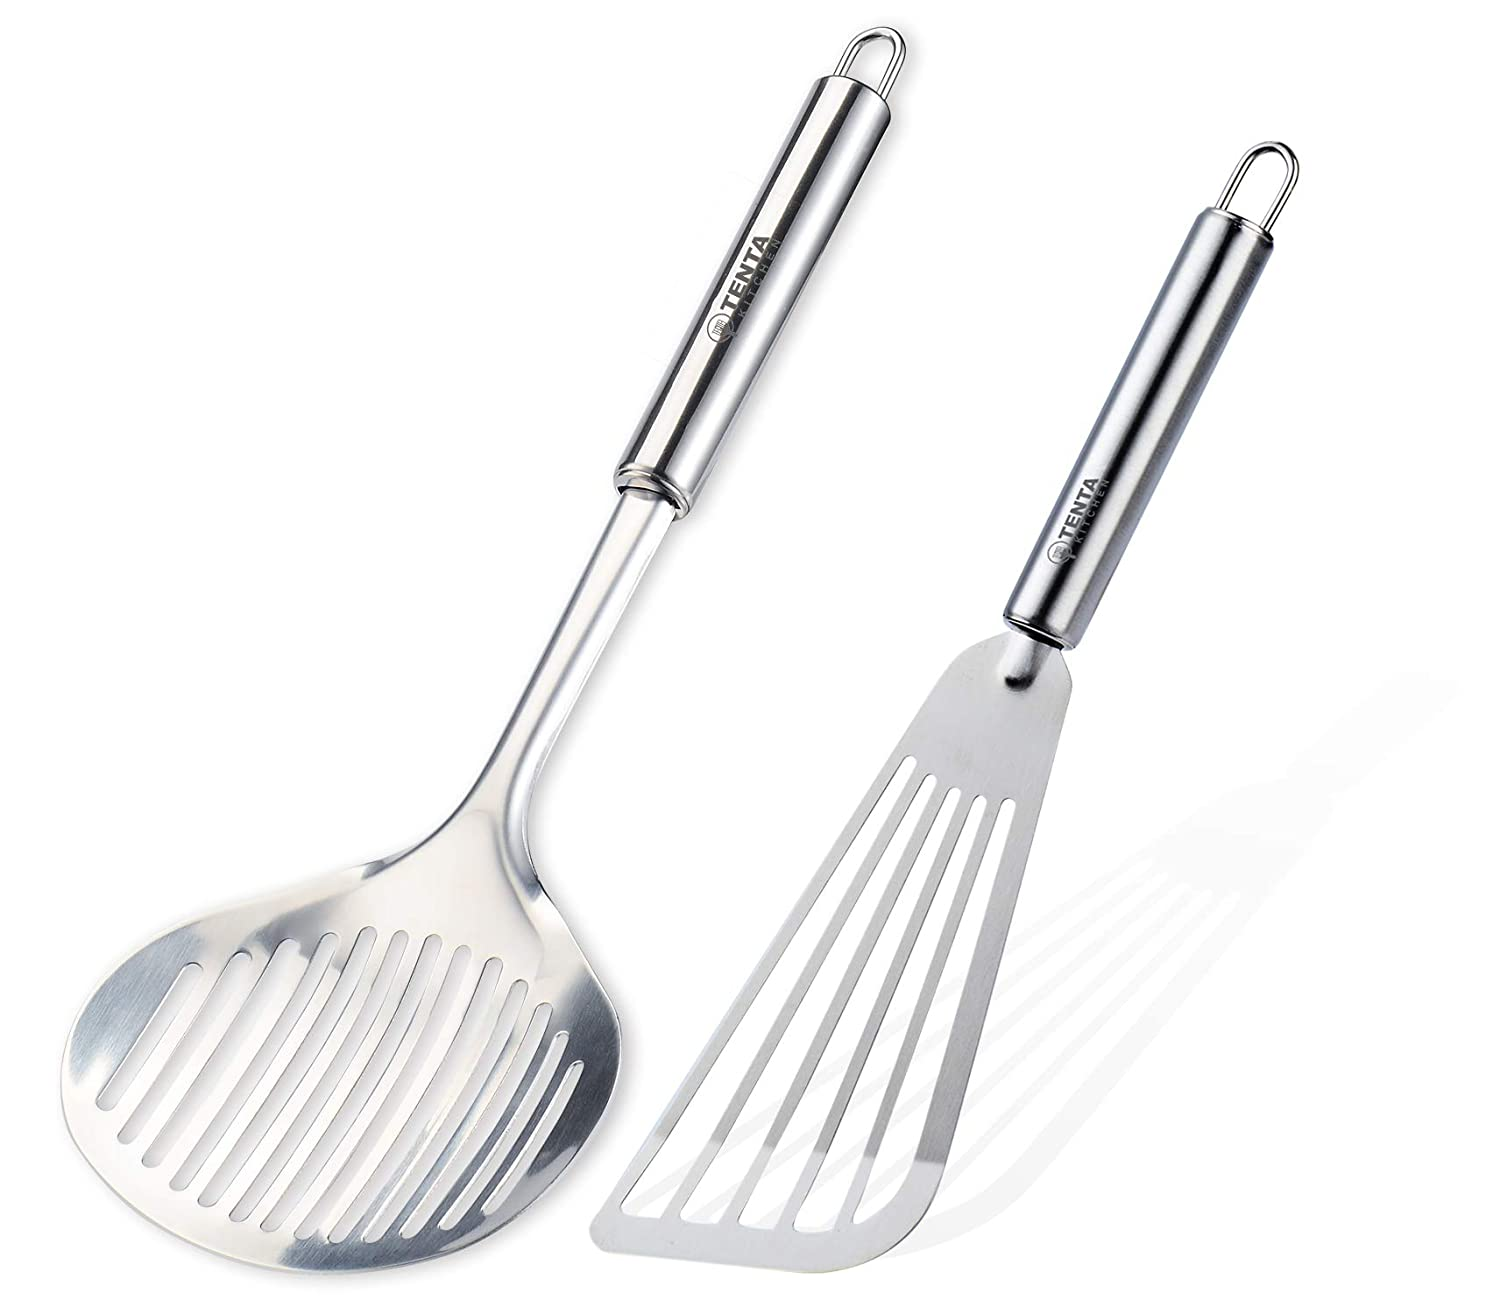 Tenta Kitchen Flexible Fish Turner Spatula, for Fish/egg/meat/dumpling Frying (Turner Set Of 2)